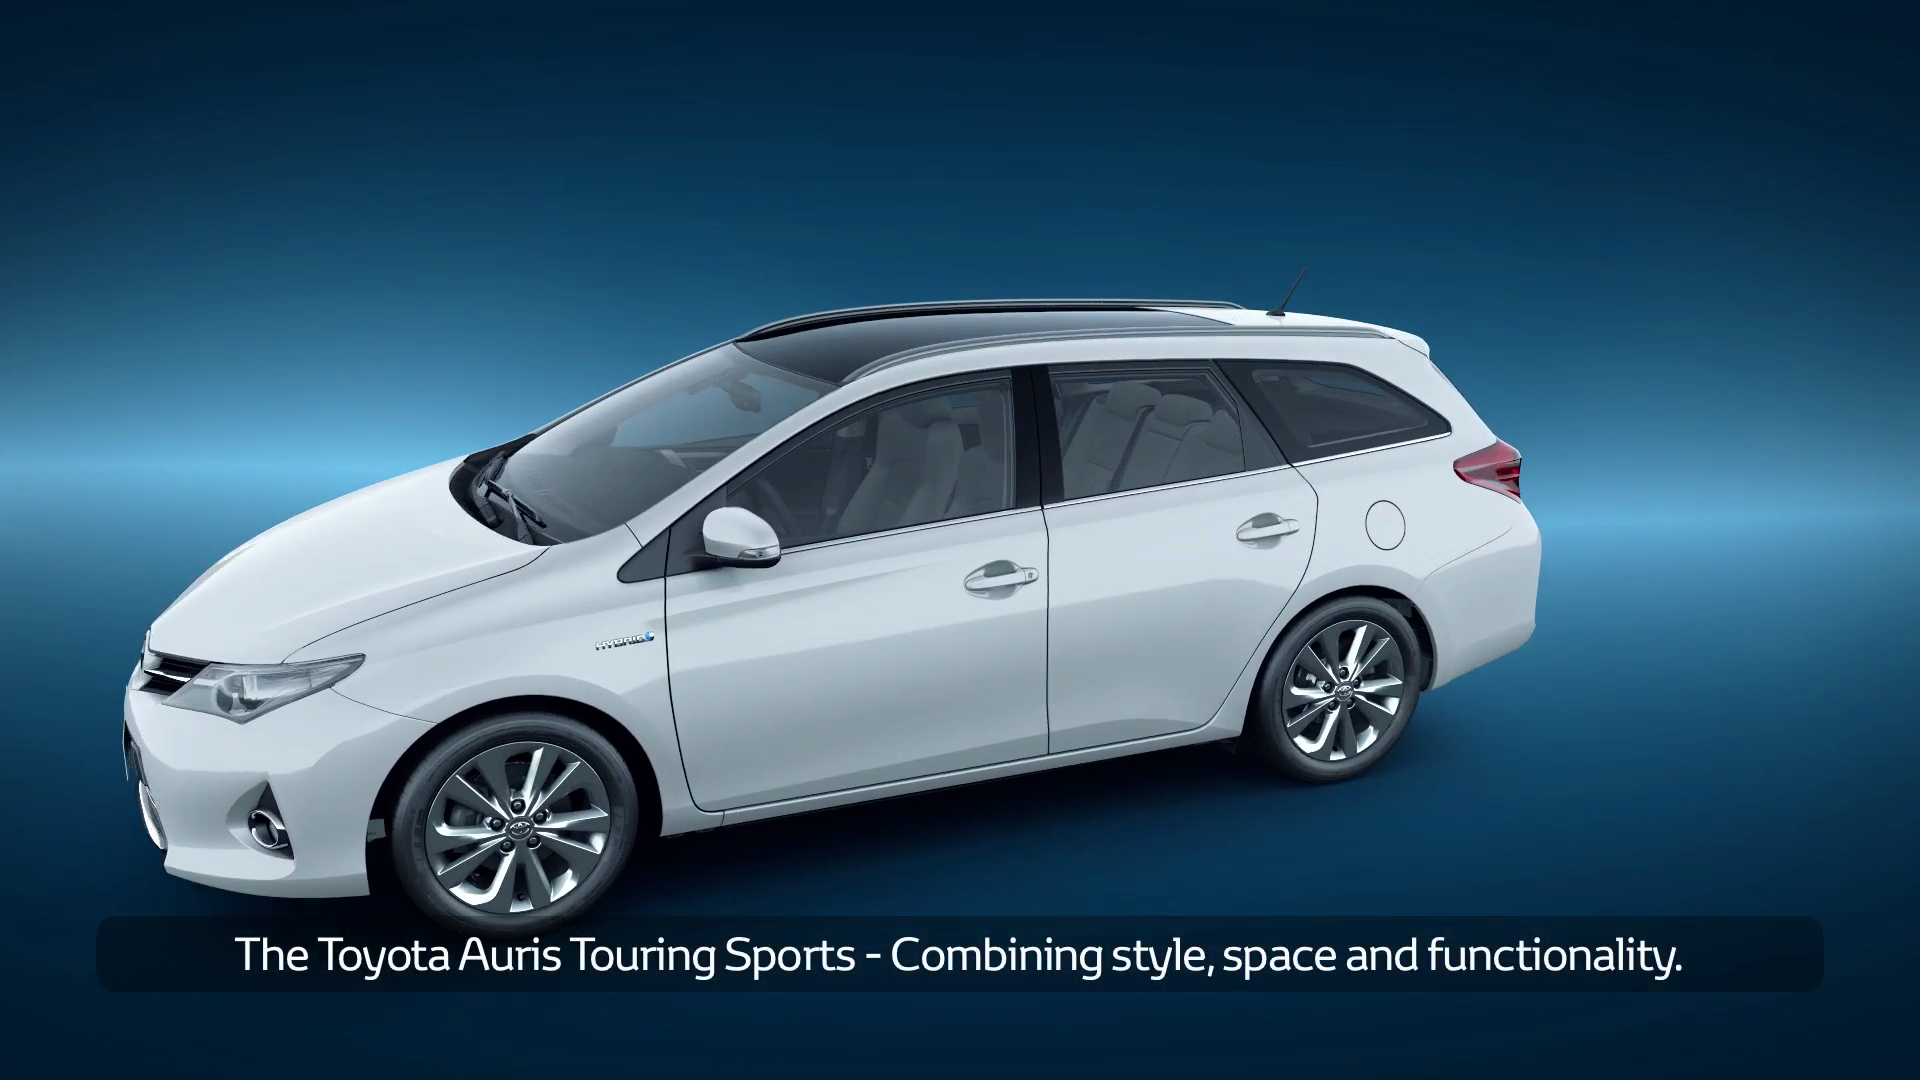 Auris Hybrid Touring Sports Functionality With Captions